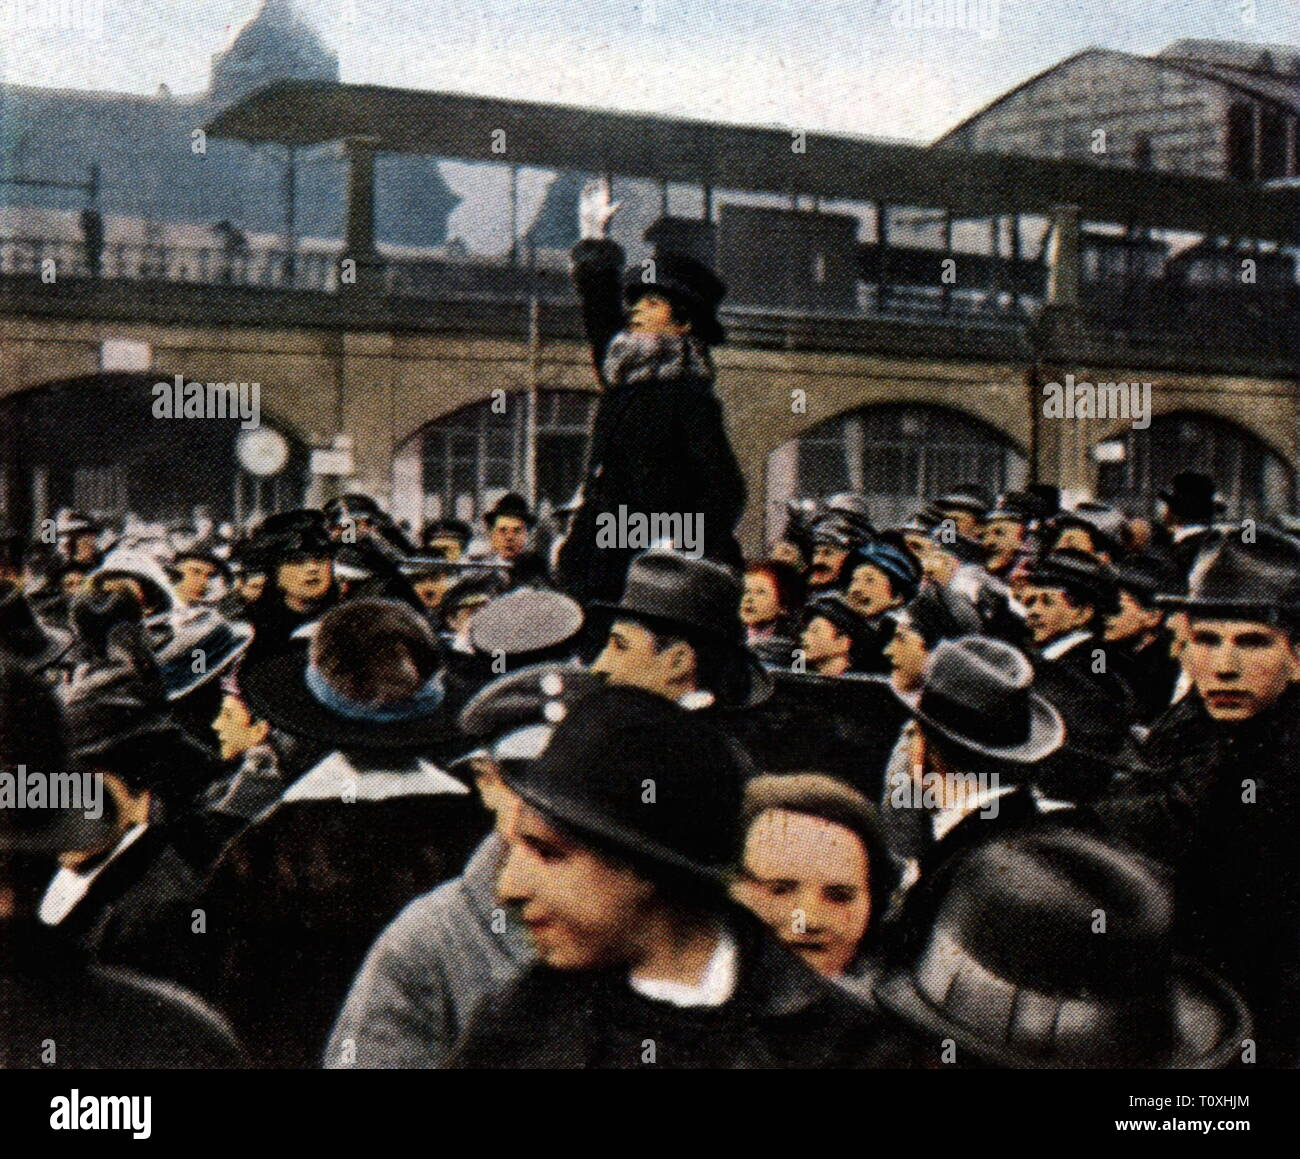 politics, election campaign, a woman is delivering an election speech, Berlin, January 1919, coloured photograph, cigarette card, series 'Die Nachkriegszeit', 1935, suffrages, universal suffrage, women's suffrage, crowd, crowds, crowds of people, audience, audiences, Free State of Prussia, Germany, German Reich, Weimar Republic, people, 1910s, 20th century, 1930s, politics, policy, election campaign, election campaigns, woman, women, election speech, election speeches, coloured, colored, post war period, post-war period, post-war years, post-war , Additional-Rights-Clearance-Info-Not-Available - Stock Image